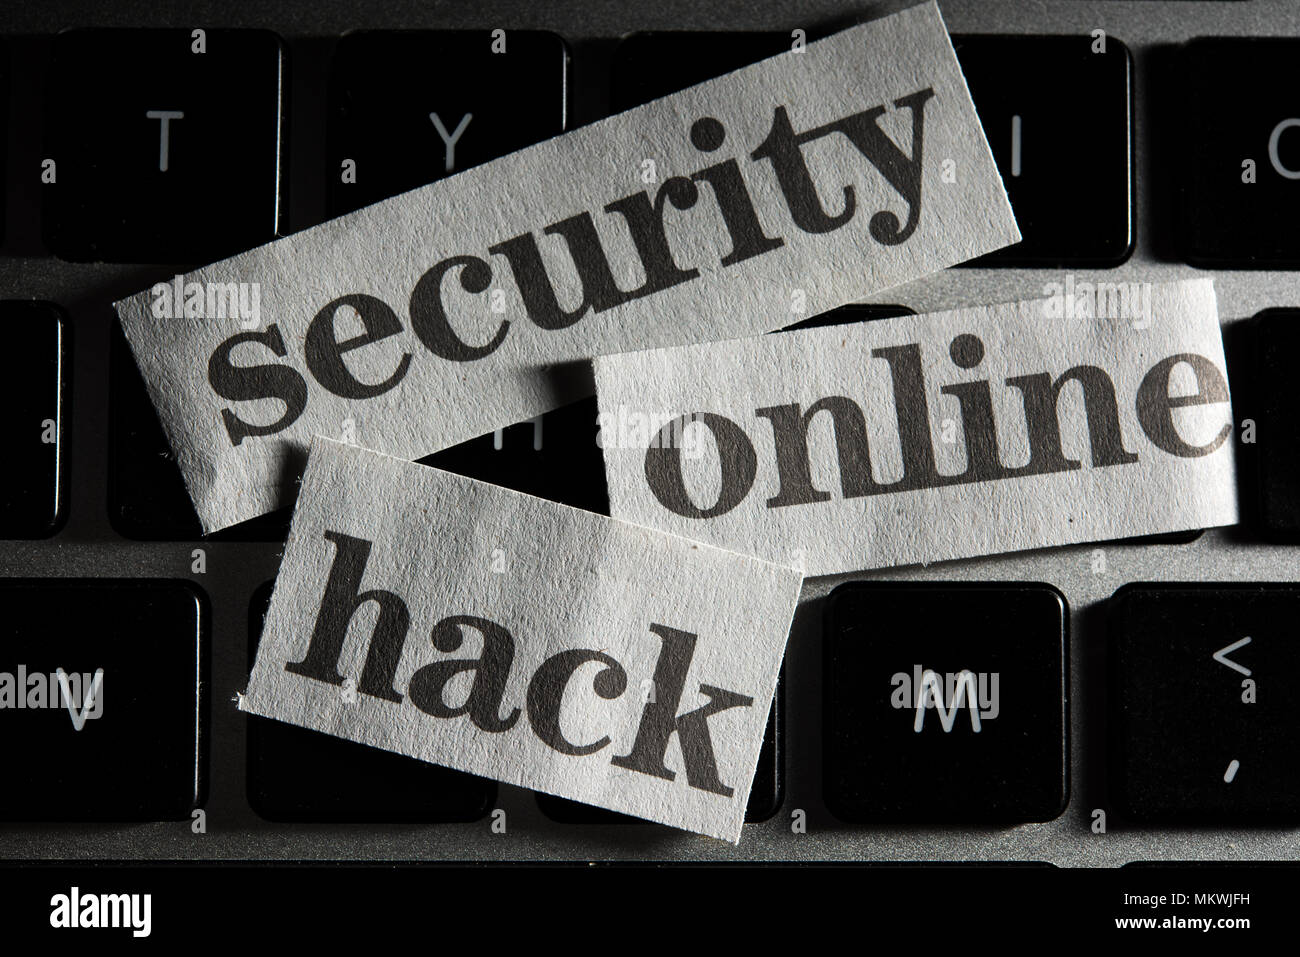 Online Security Concept with cut out words from newspaper Stock Photo